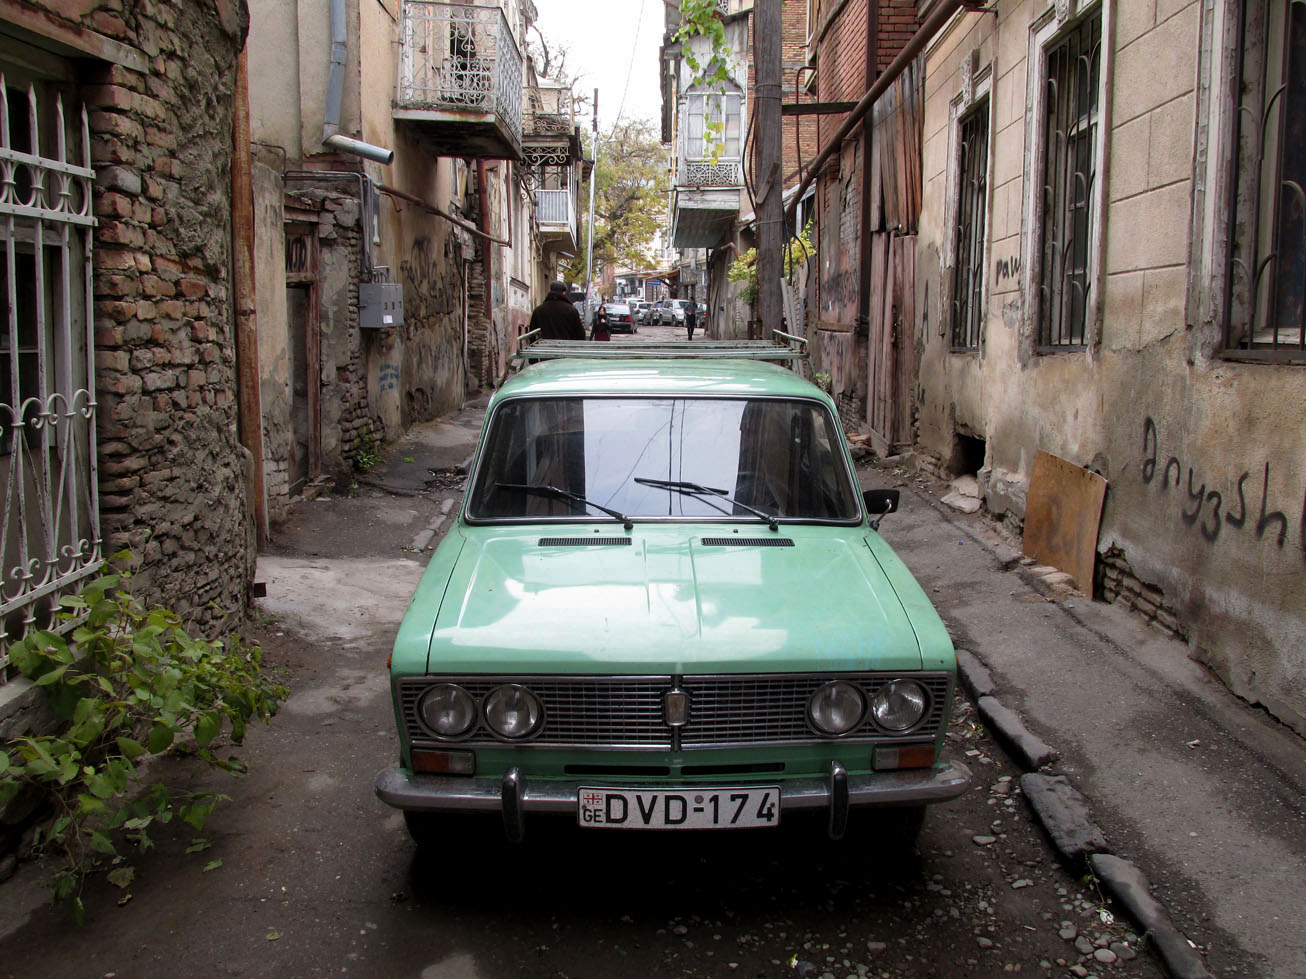 Old car in an old street